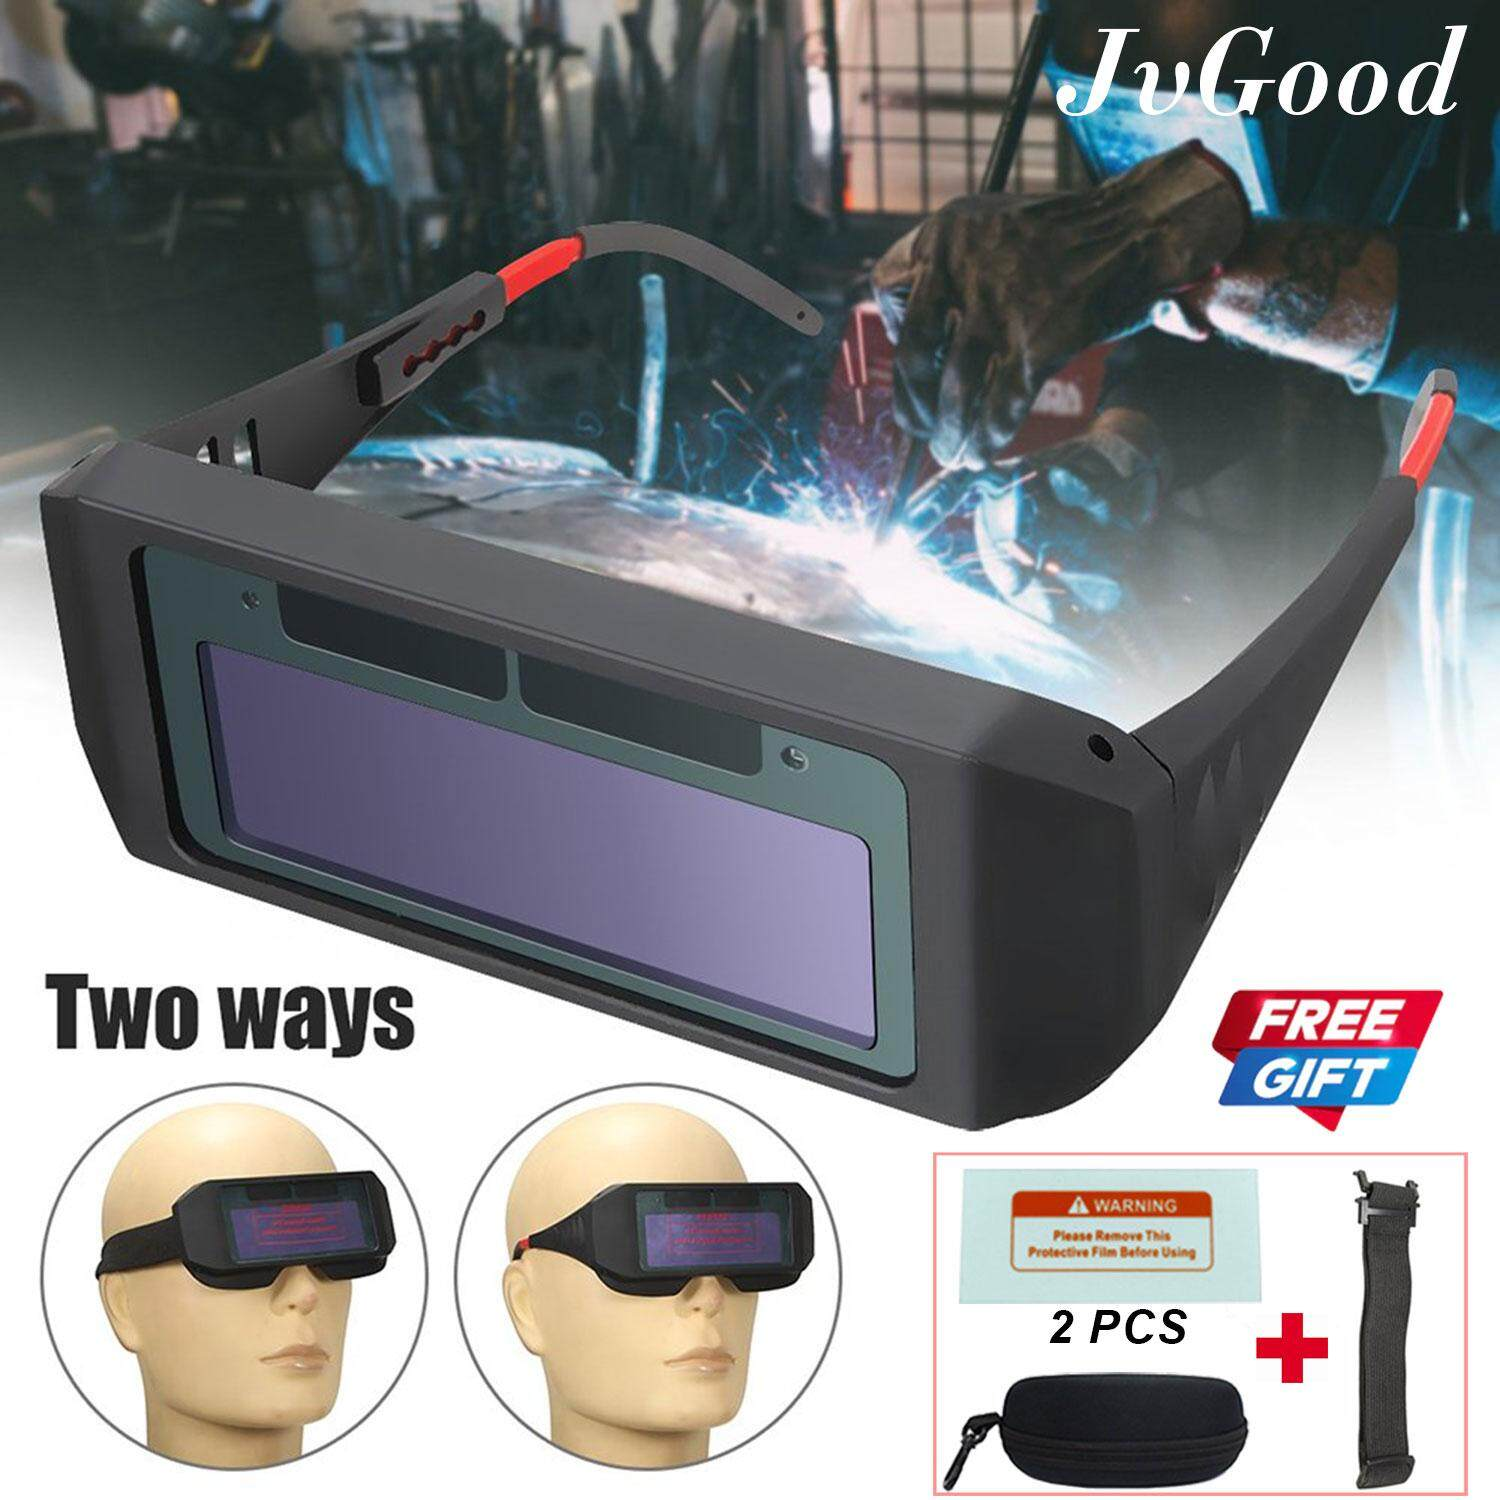 JvGood Solar Powered Safety Goggles Welding Glasses Eye Protection Glasses Eyes Goggles Welder Glasses Auto Darkening Welding Eyewear with Free Gift